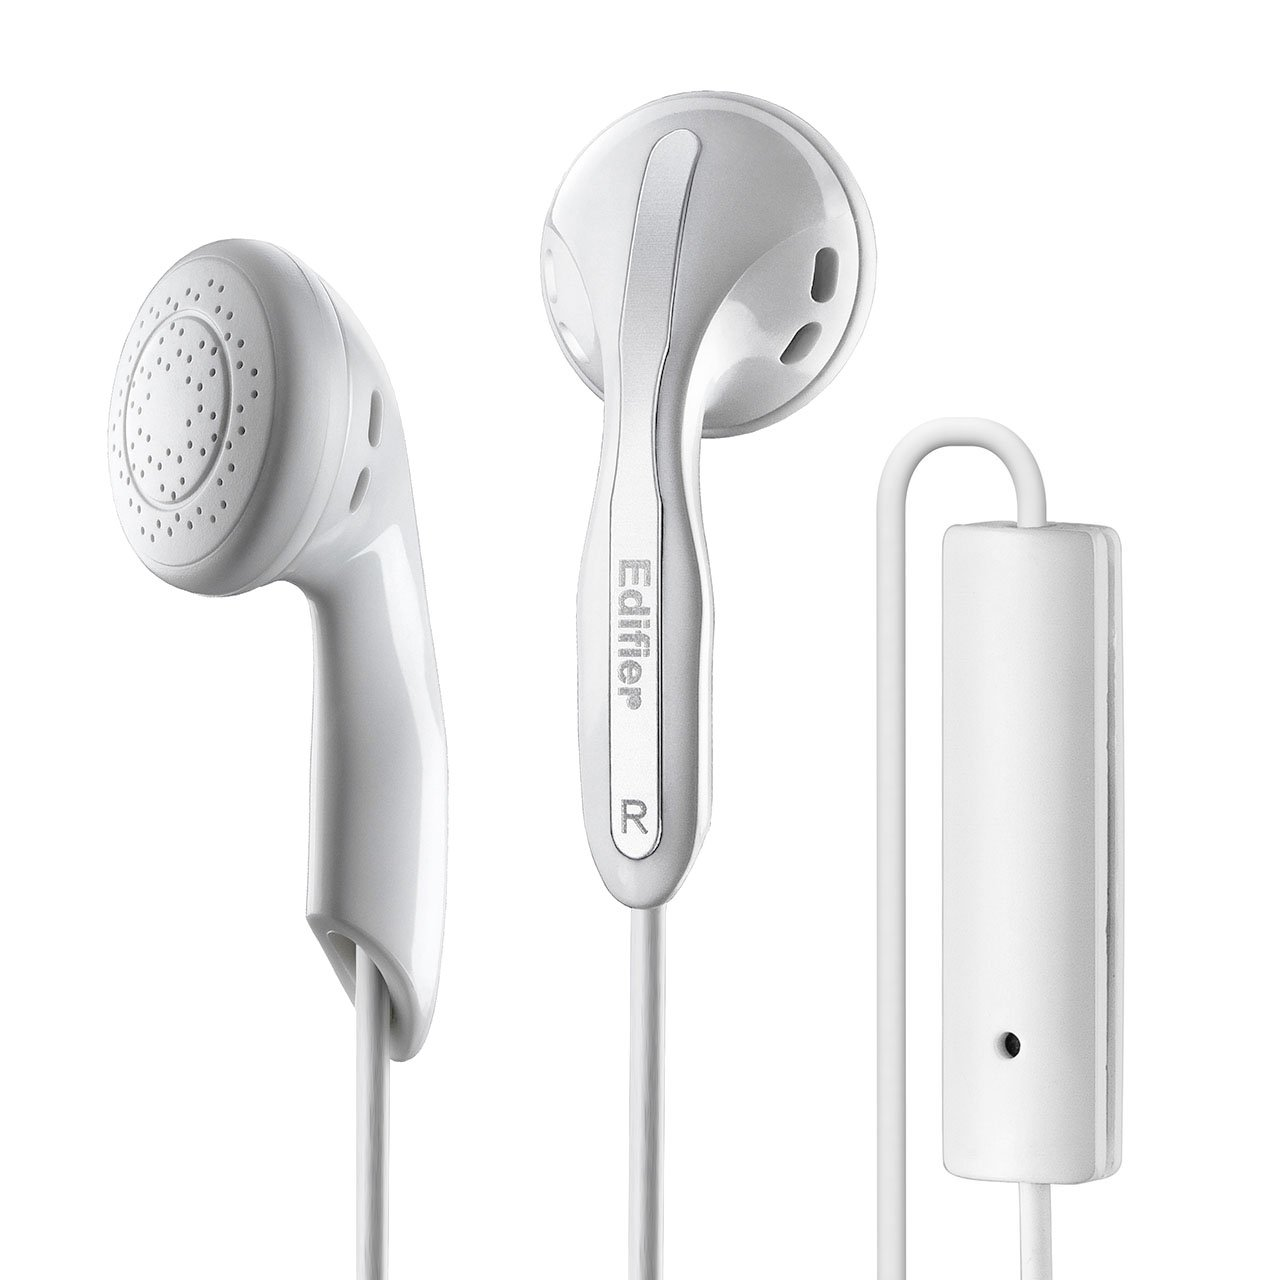 Edifier P180 Headphones with Mic and Inline Control - Stereo Earbud Earphone Earpod Headphone with Microphone and Remote For Apple iPhone Samsung HTC Nokia - White